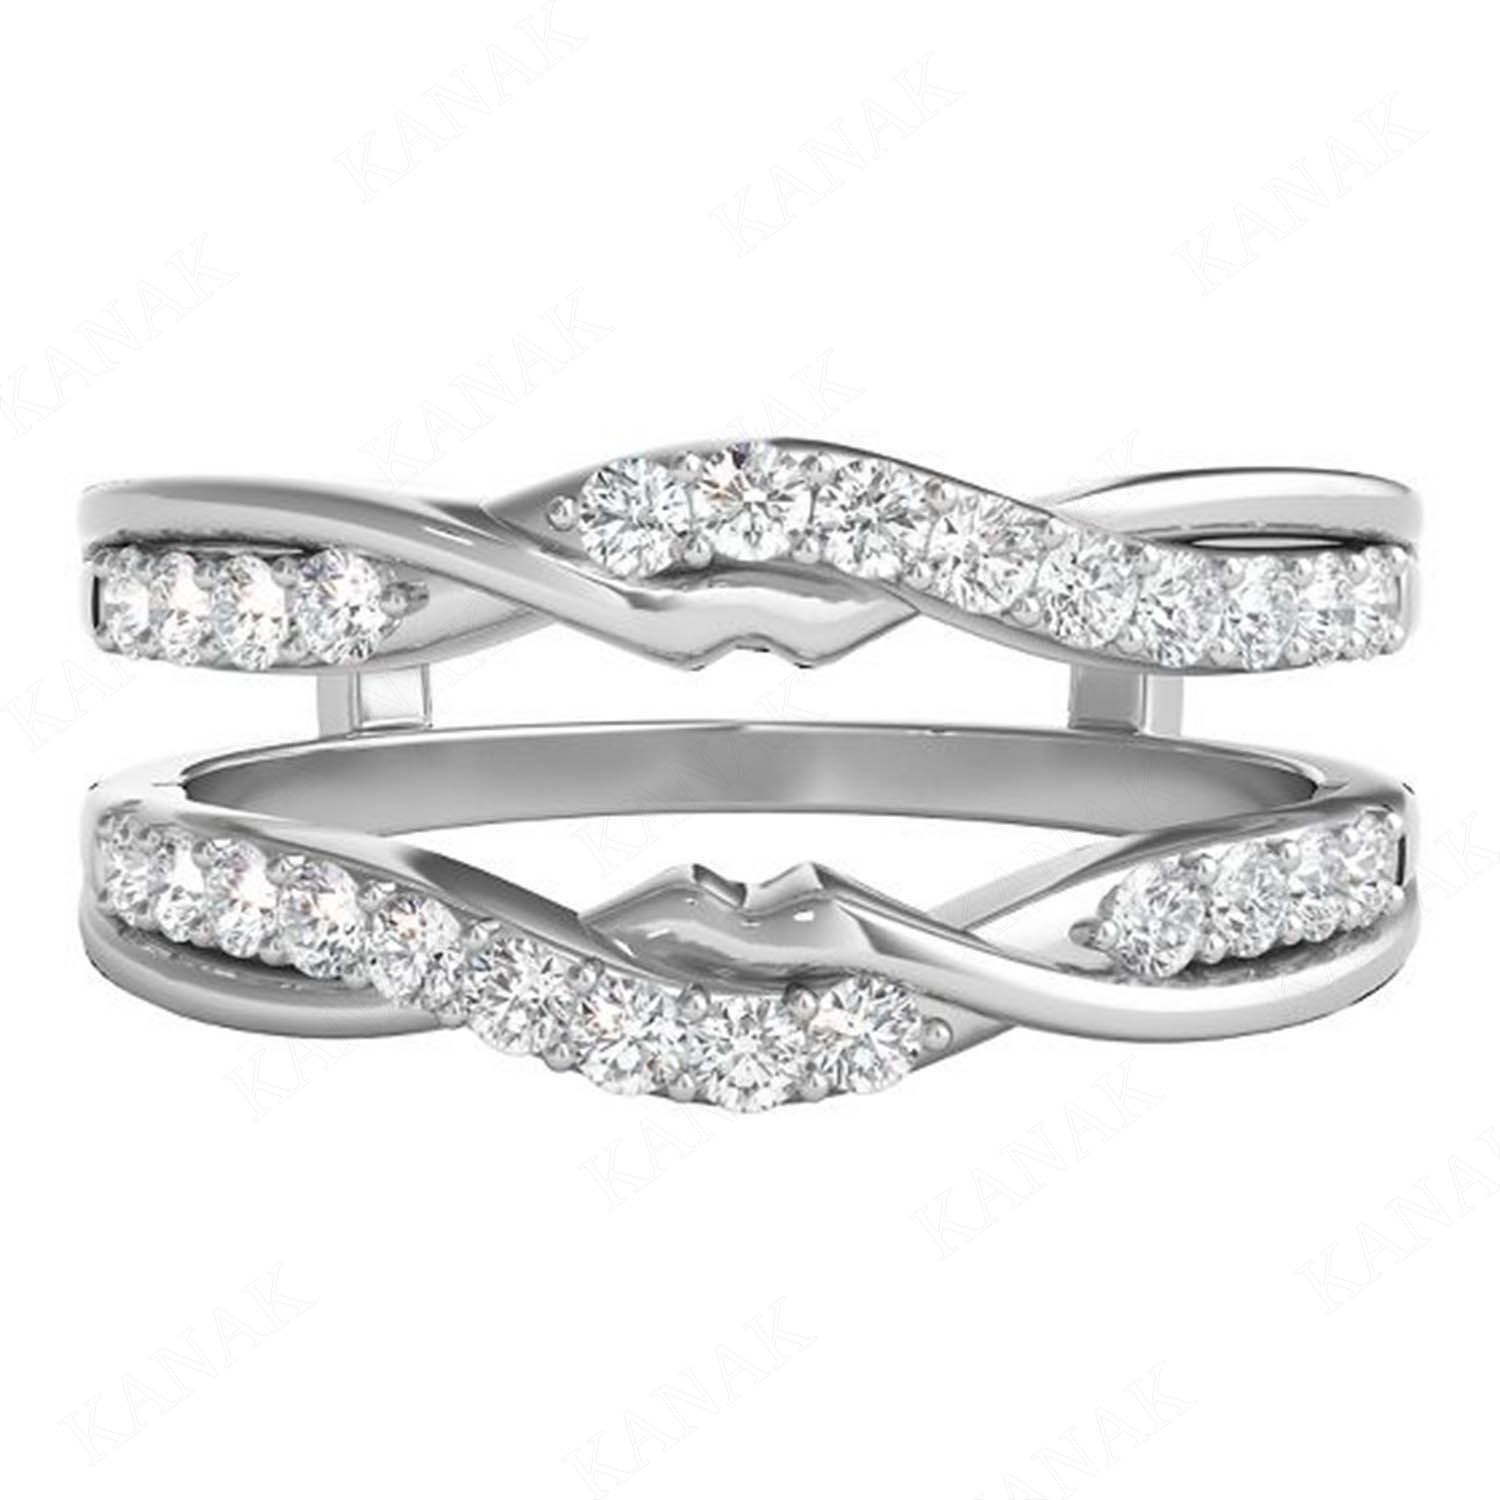 0.50 Ct Natural Diamond 14K White Gold Wrap Guard Enhancer Jacket Within Most Current Diamond Contour Solitaire Enhancers In 14K White Gold (Gallery 14 of 15)